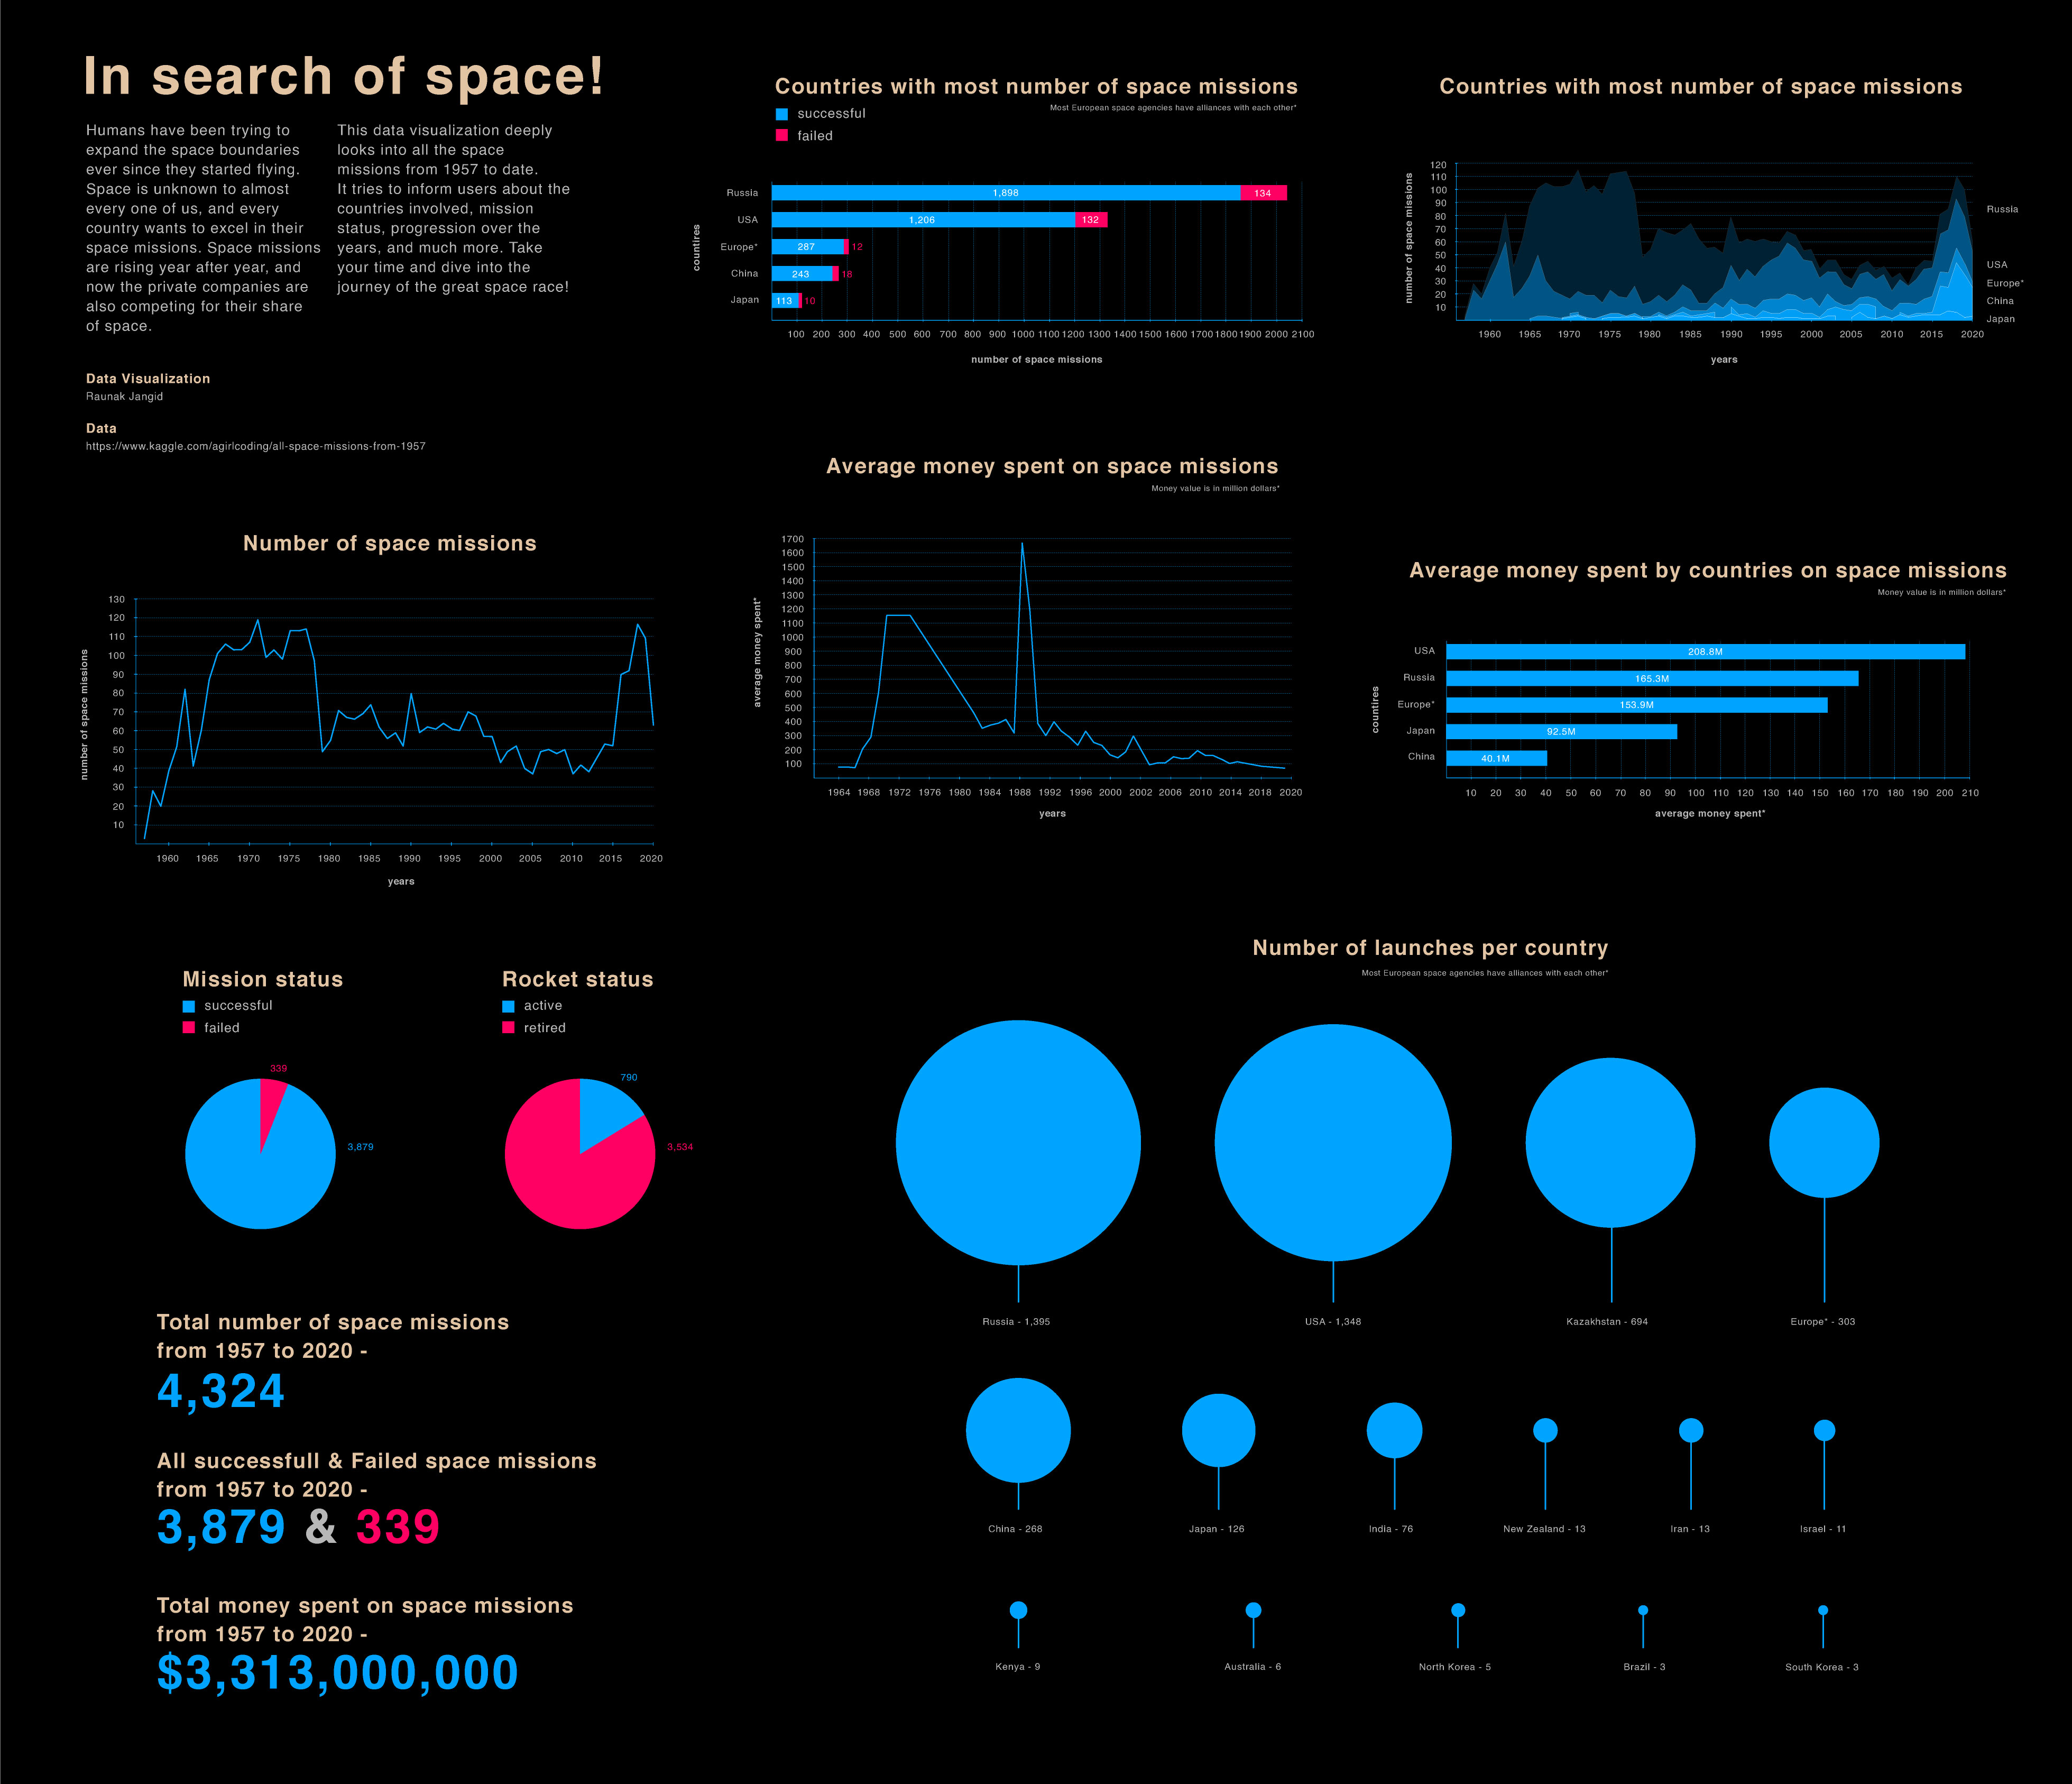 Data visualization for In Search of Space